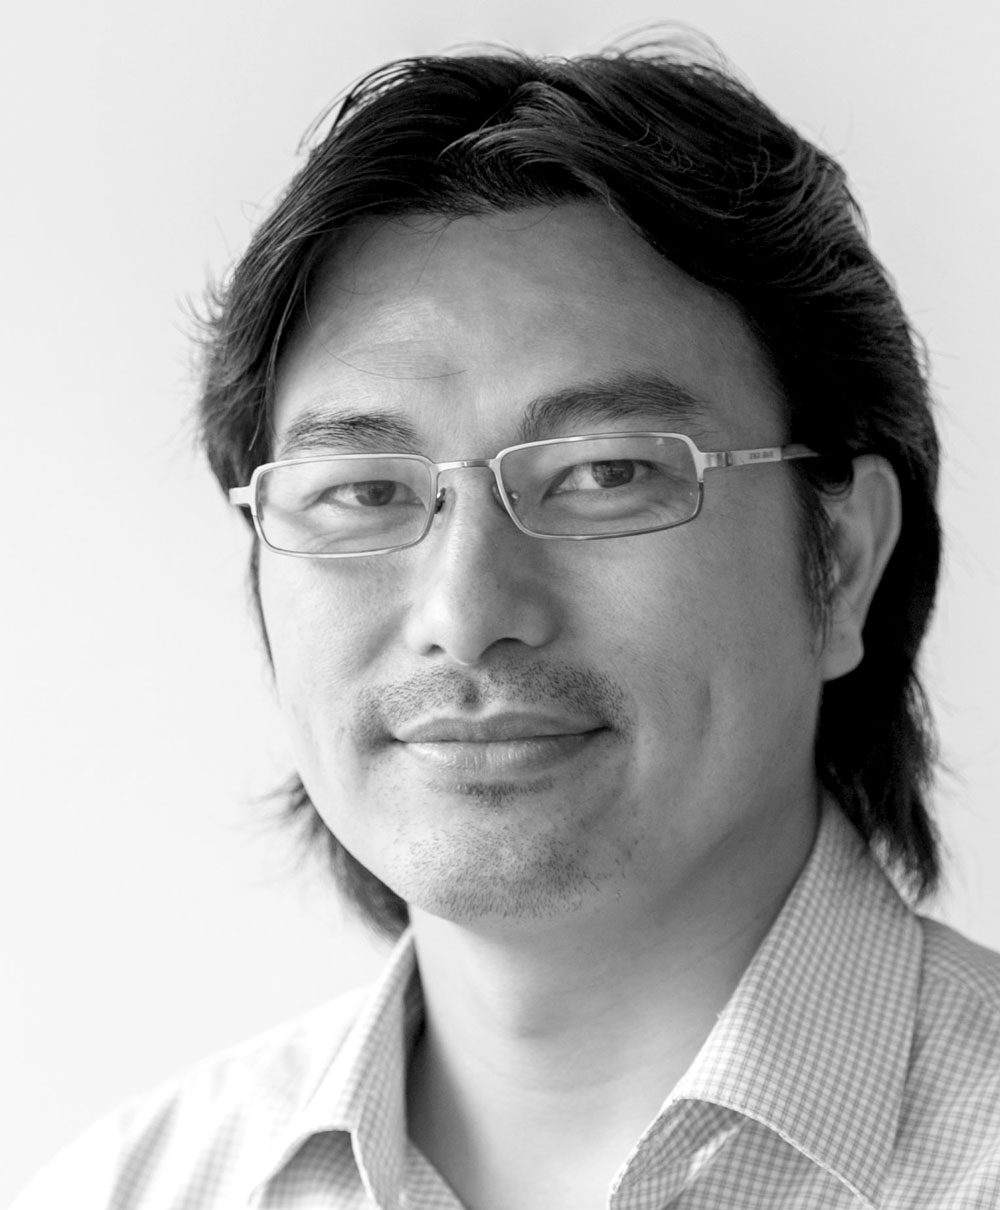 Headshot of Guillaume Chan